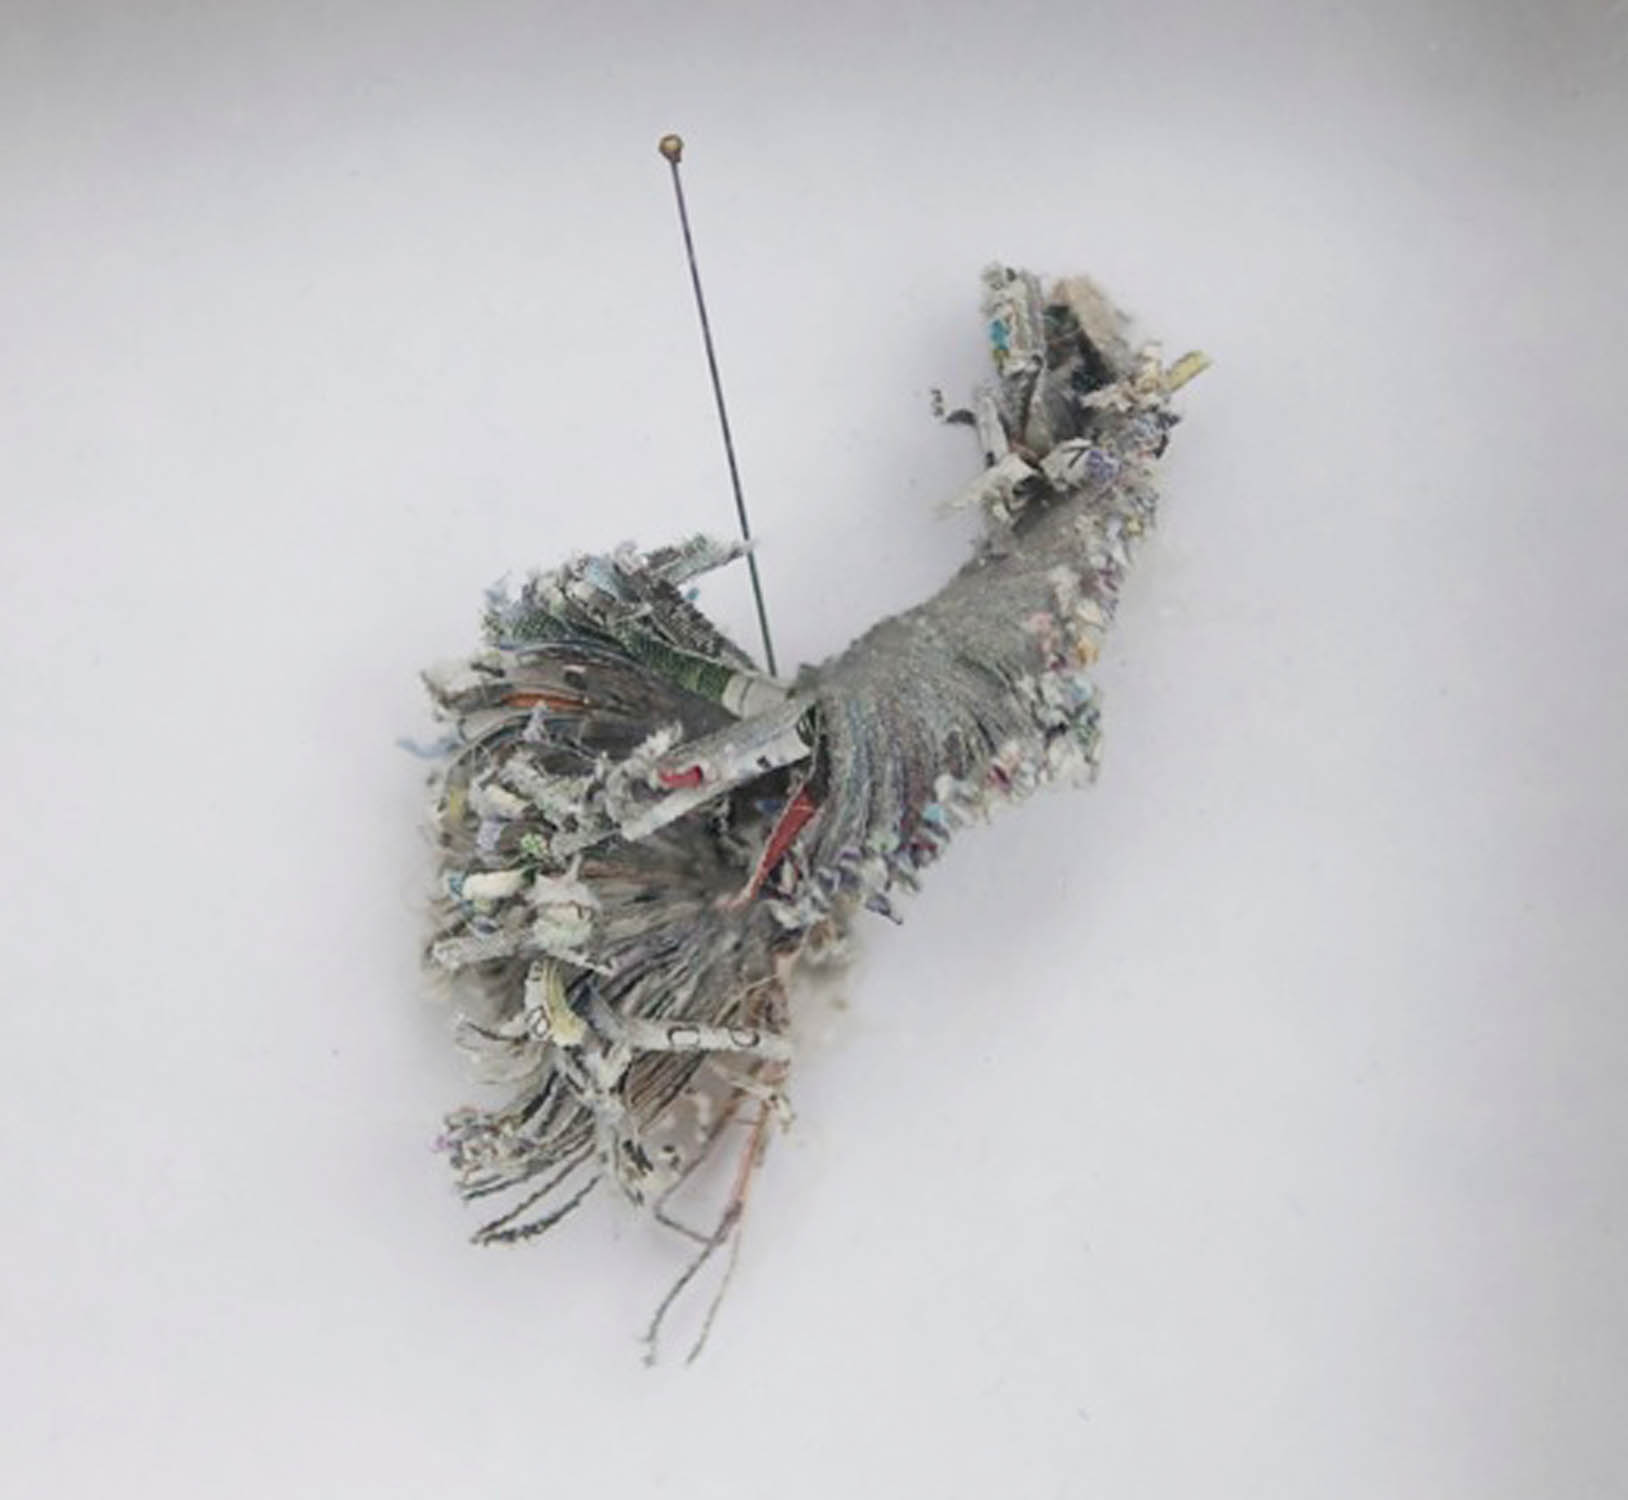 newsapaper artwork by Tracey Falcon, title LEVESON EXHIBITS newspaper trimmed to resemble organic form held for display with lepidoptery pins